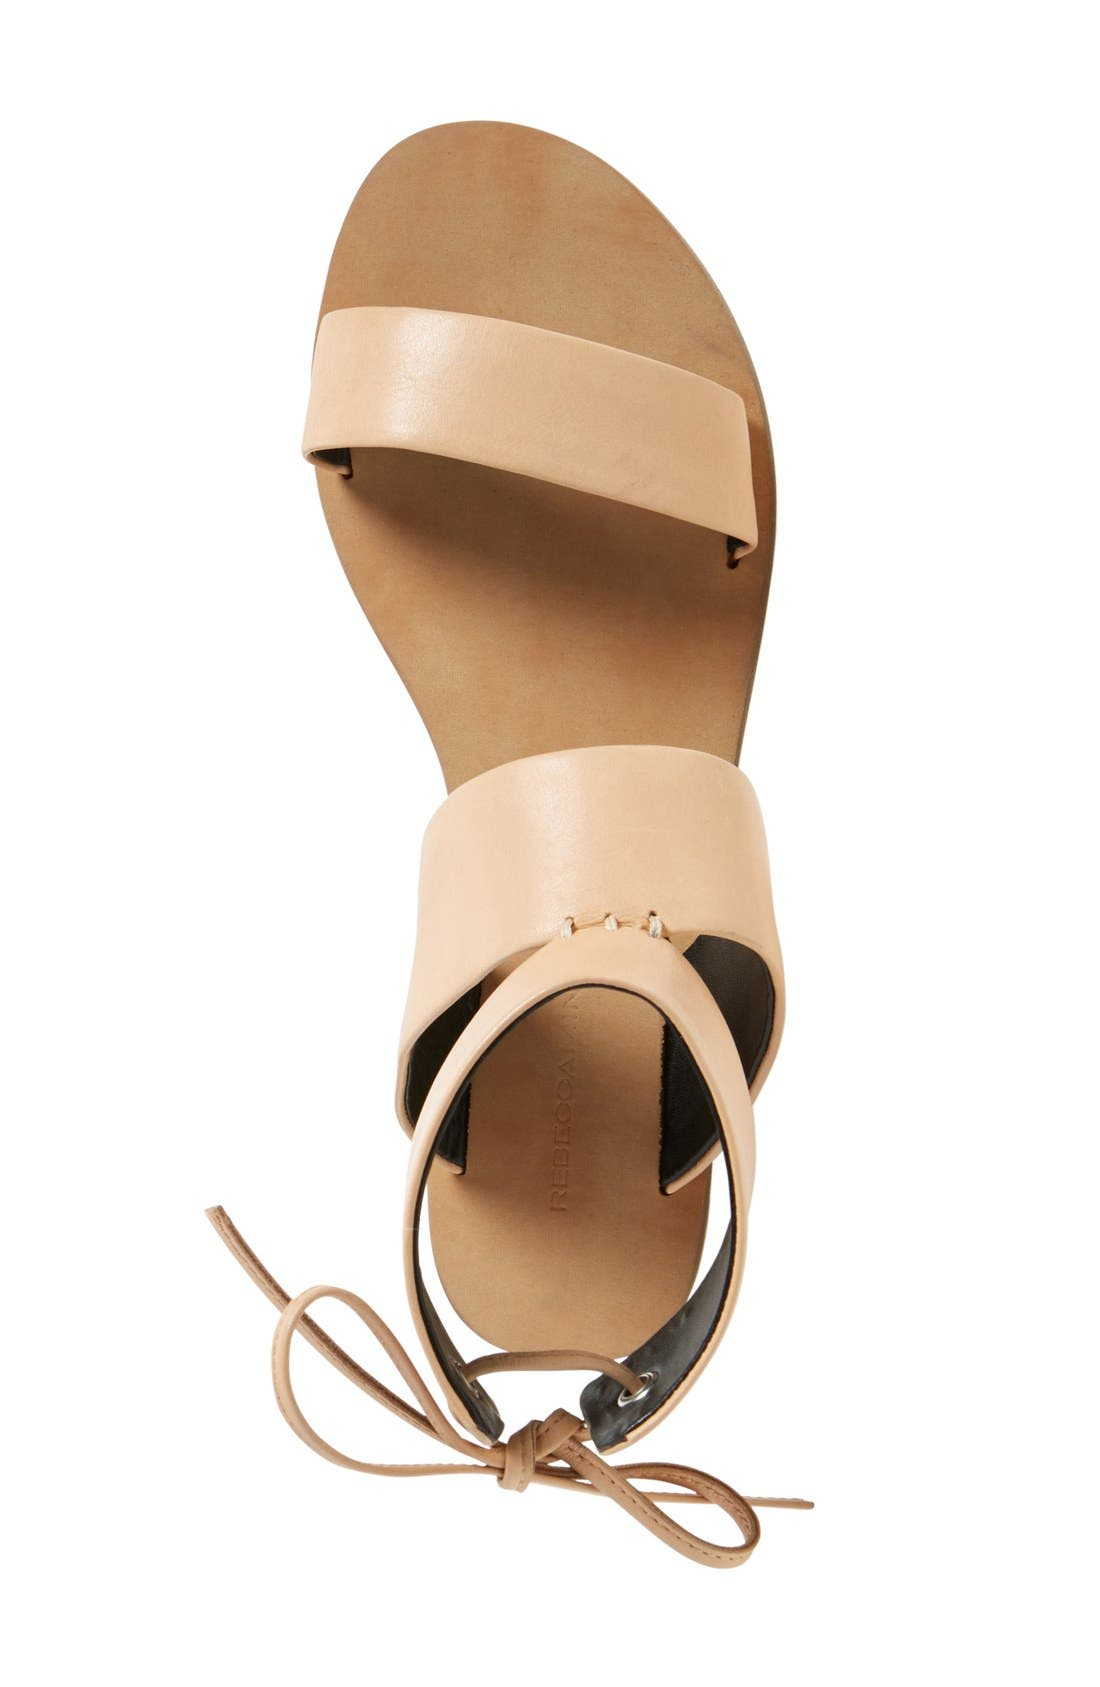 'Emma' Ankle Cuff Sandal,                             Alternate thumbnail 3, color,                             Nude Vachetta